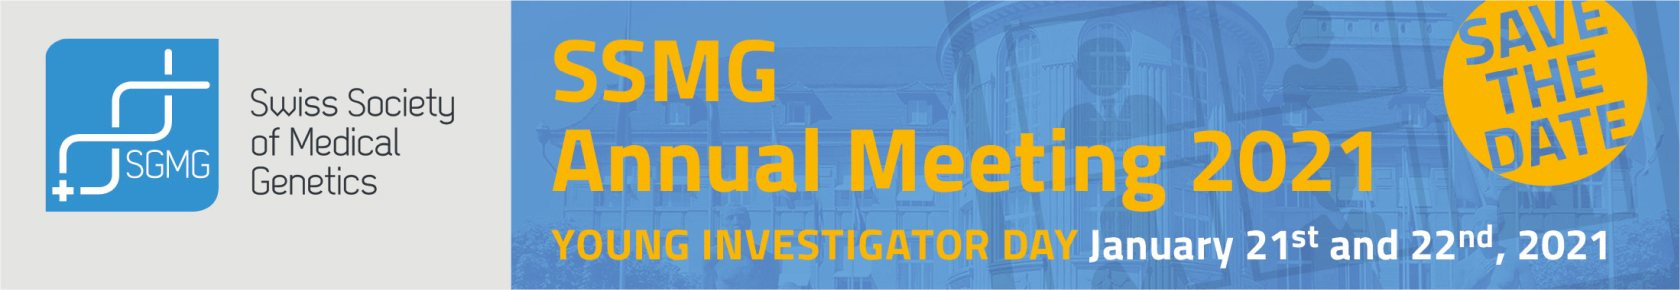 SSMG Annual Meeting 2021 - Young Investigator Day